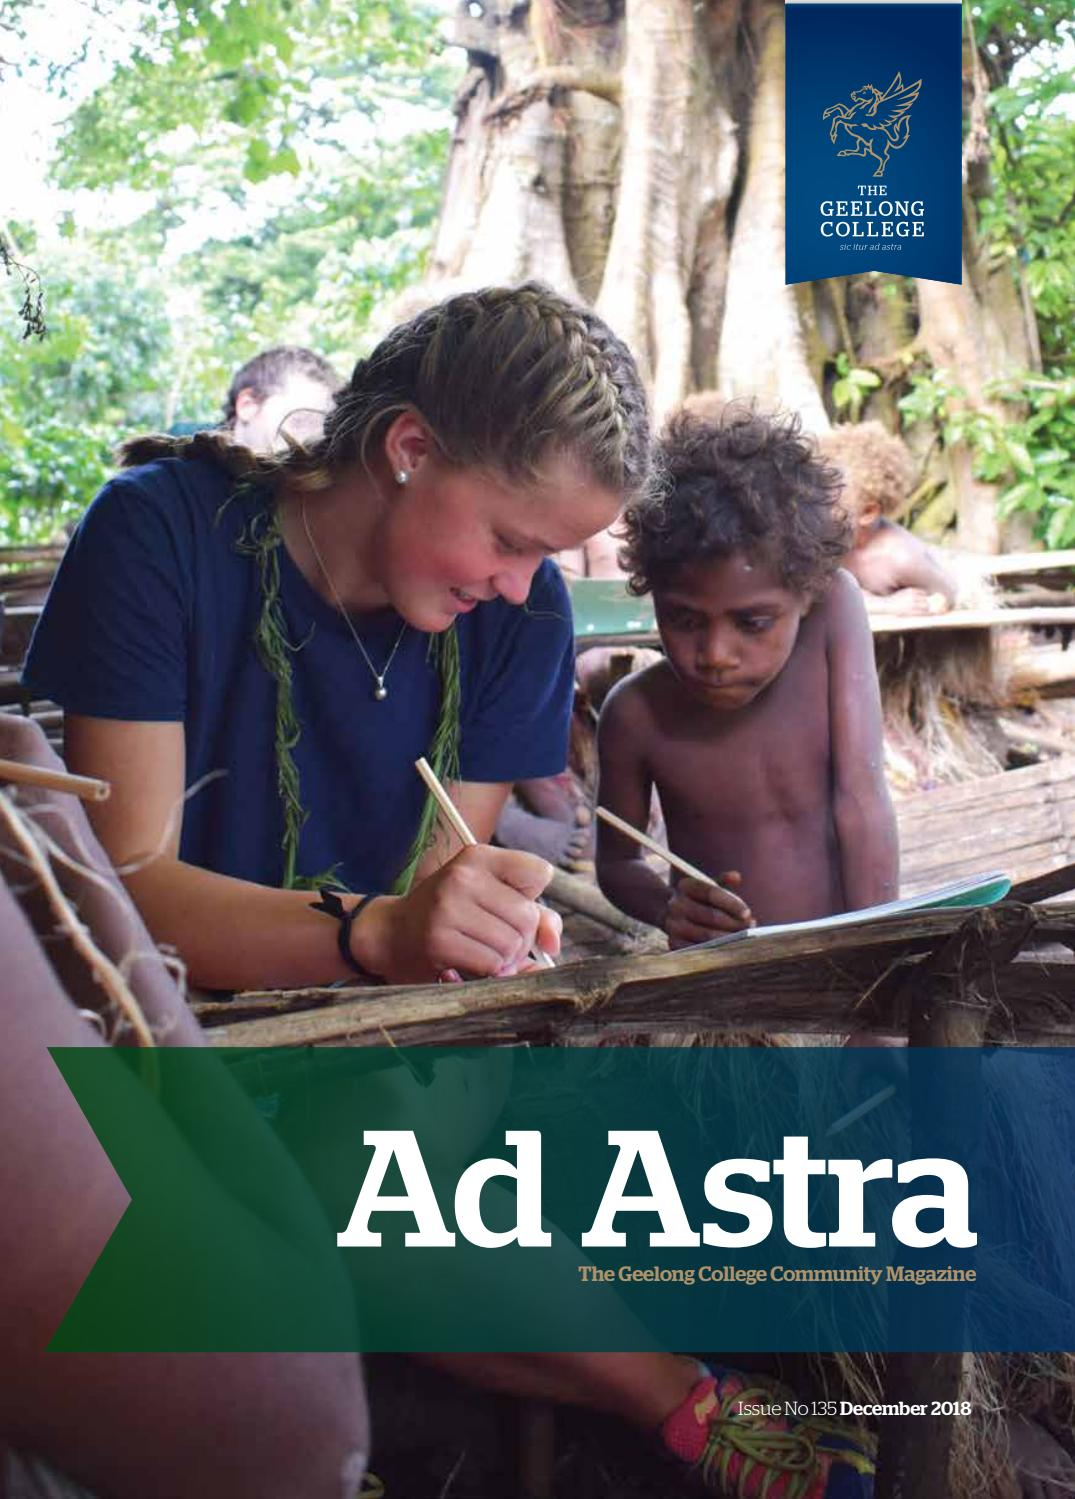 Ad Astra No 135 Dec 2018 By Geelong College Issuu